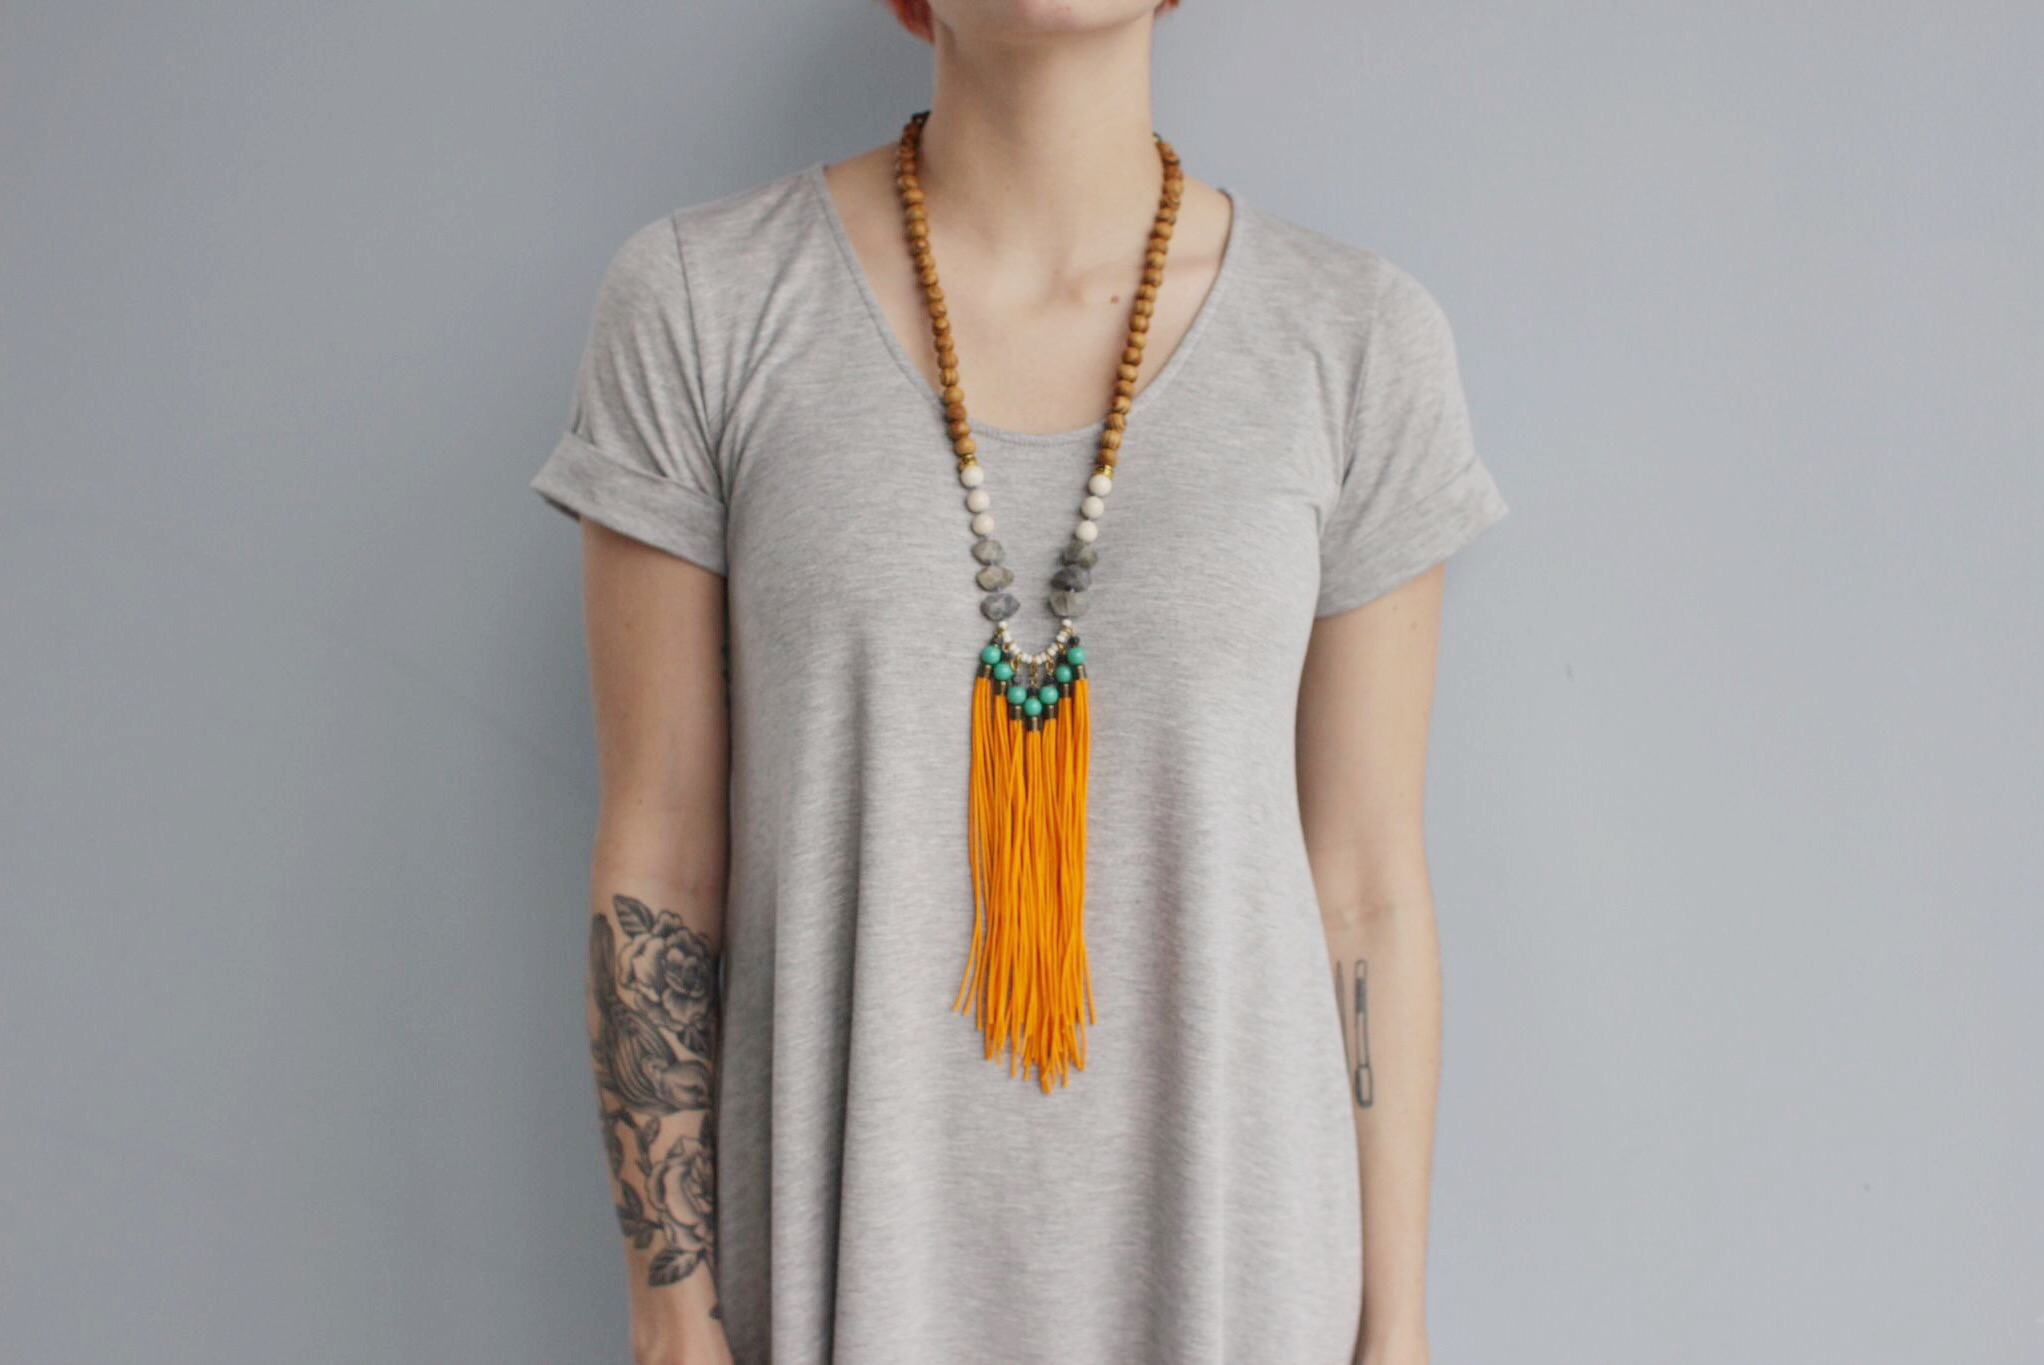 Check out this necklace for yourself on ourshop! Retailer? email: info@bou-cou.com